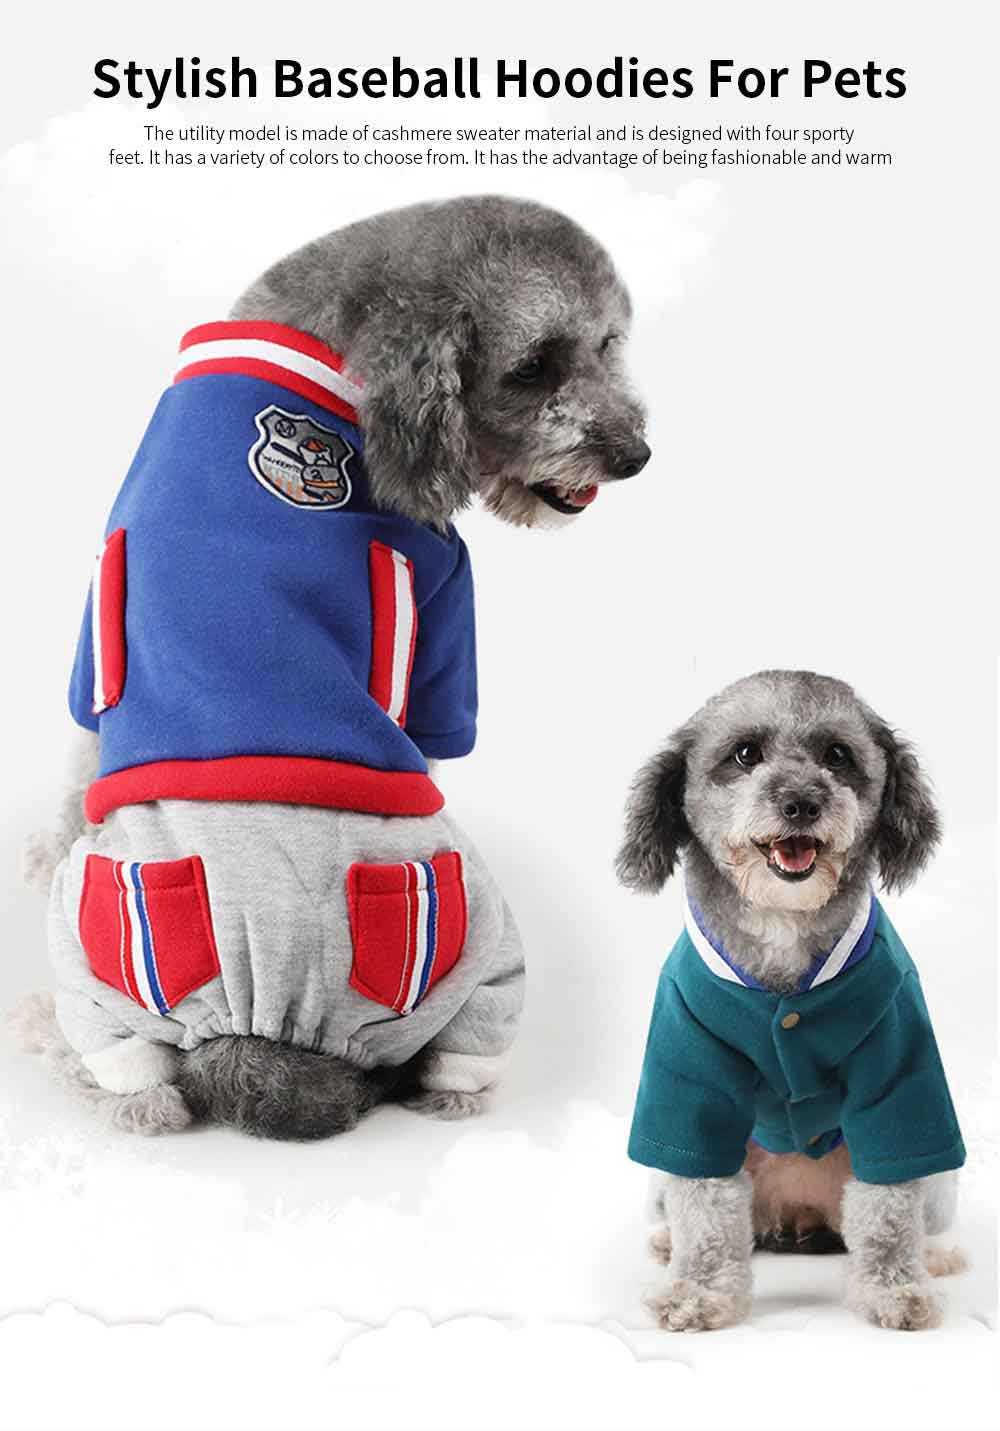 New Baseball Hoodies for Pets, Striped Pet Supplies for Four-legged Dogs, Stylish Fake Pocket Dog Clothes 0